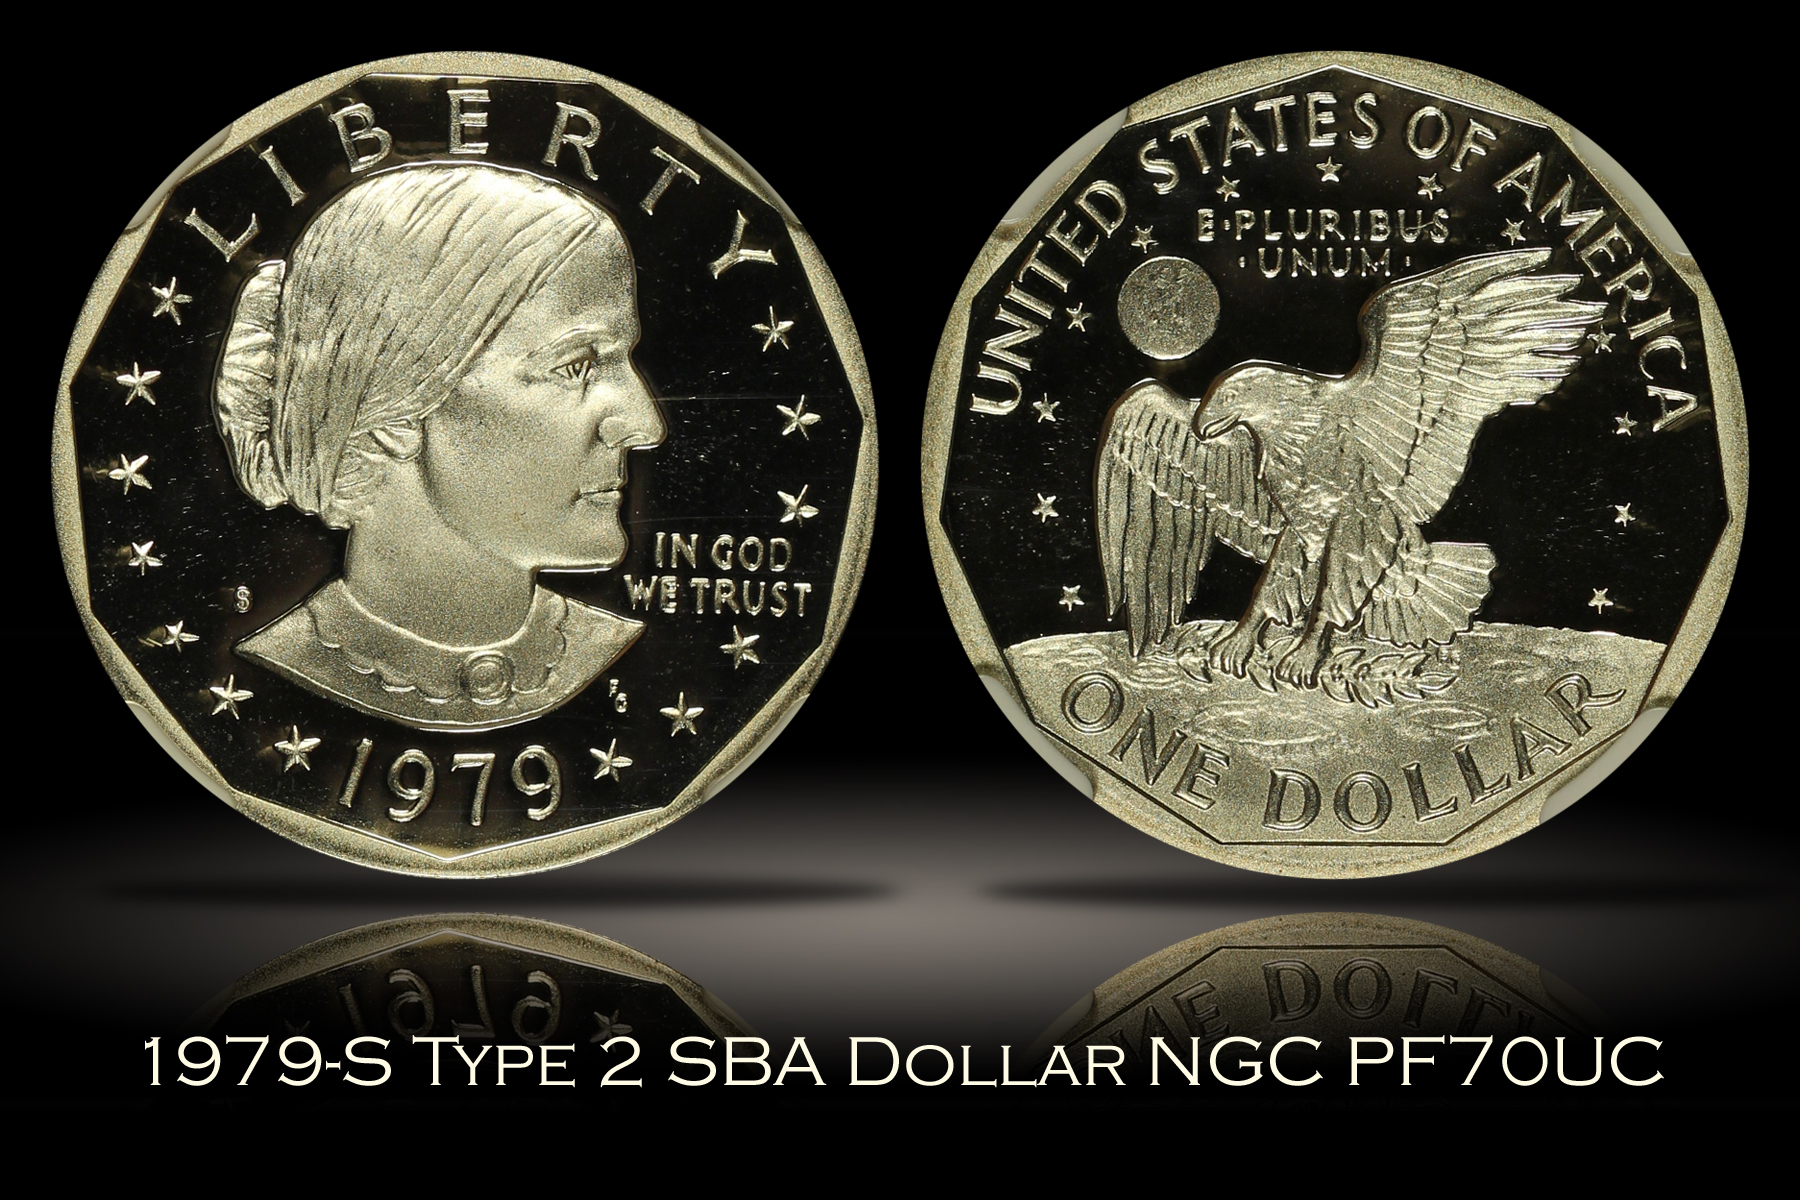 1979-S Type 2 Proof SBA Dollar NGC PF70UC